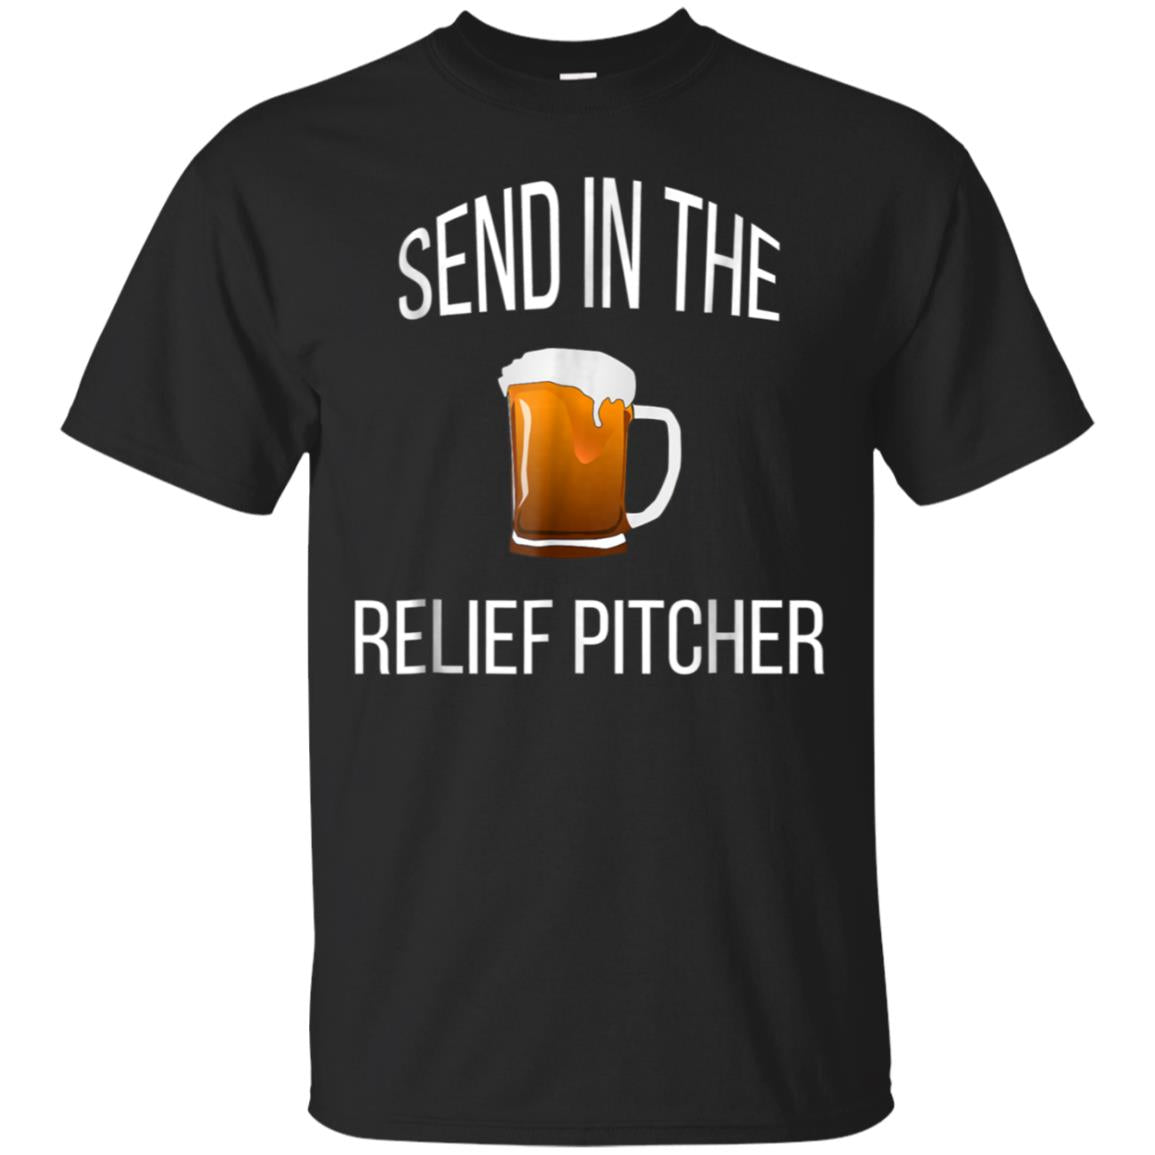 St Patricks Day Shirt Send In The Relief Pitcher T Shirt 99promocode